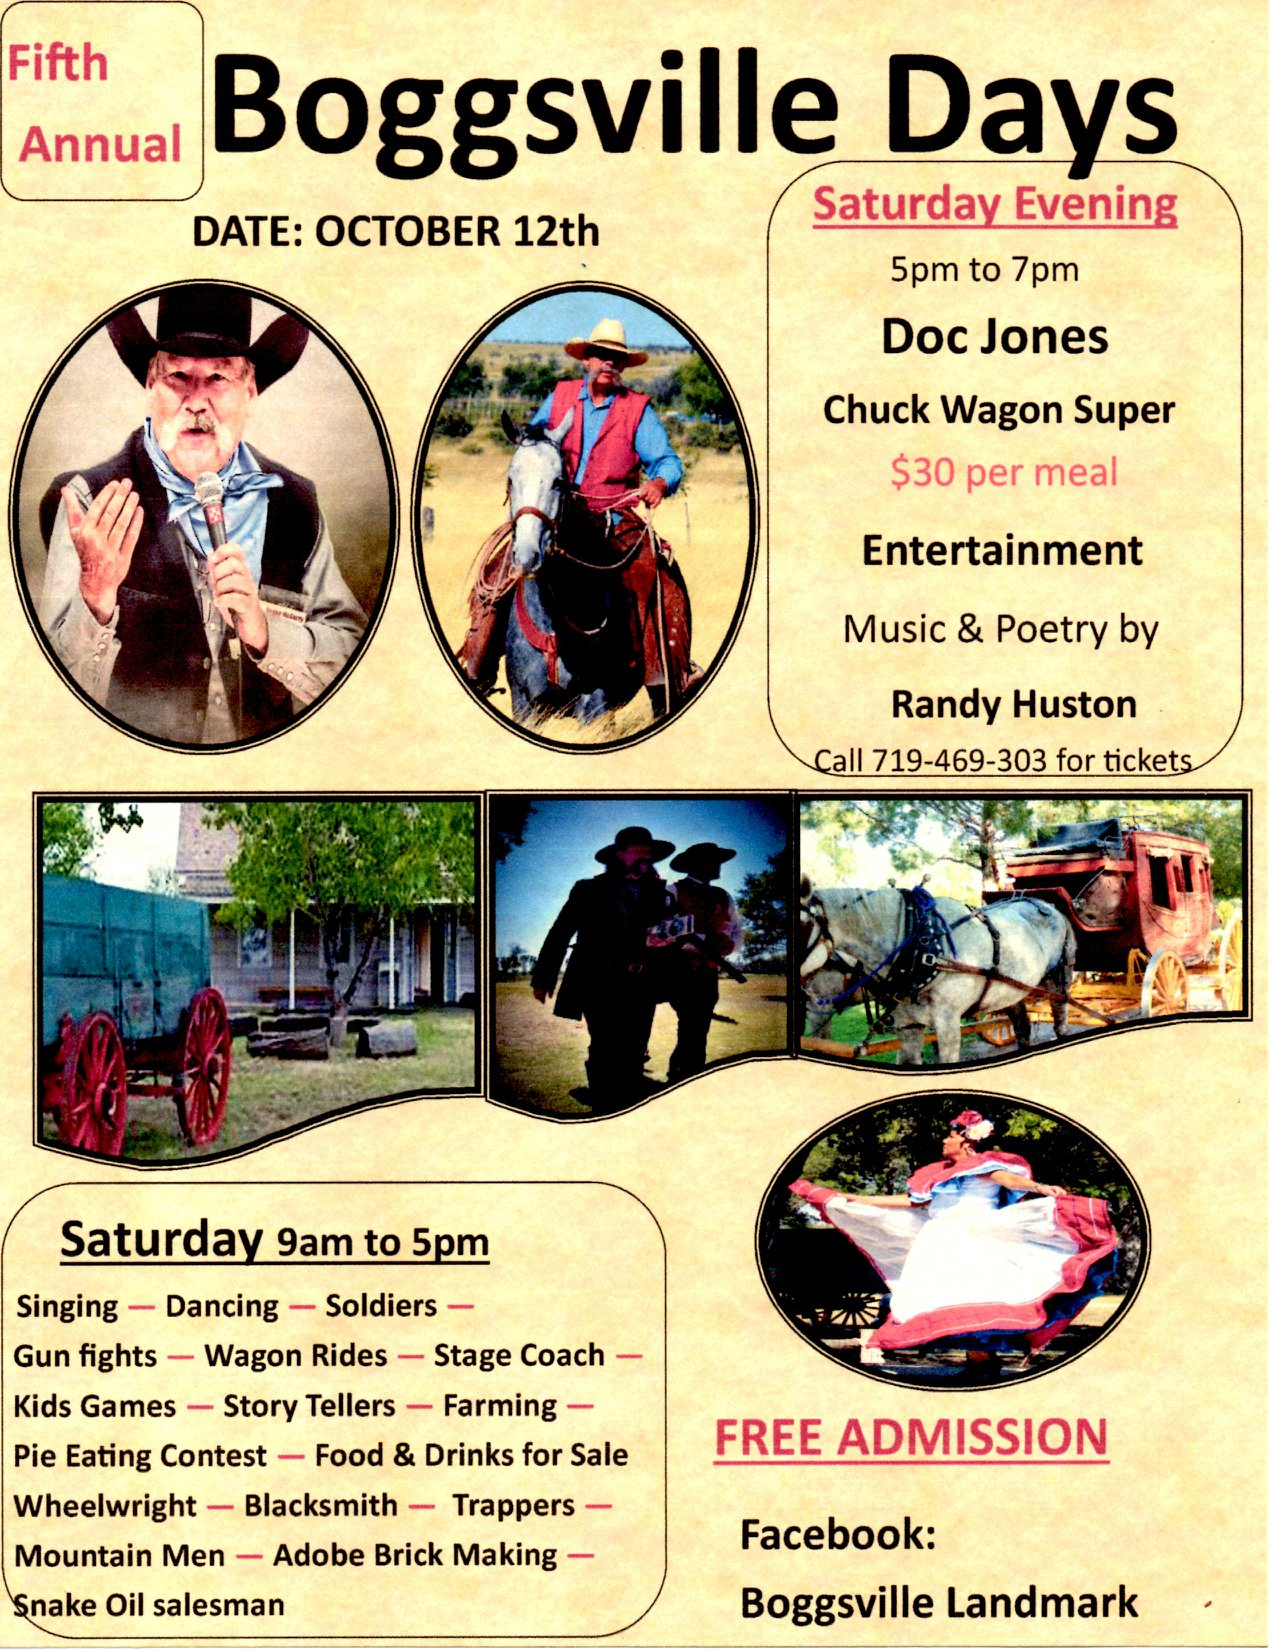 Boggsville Days - Annual chuck wagon and fun!